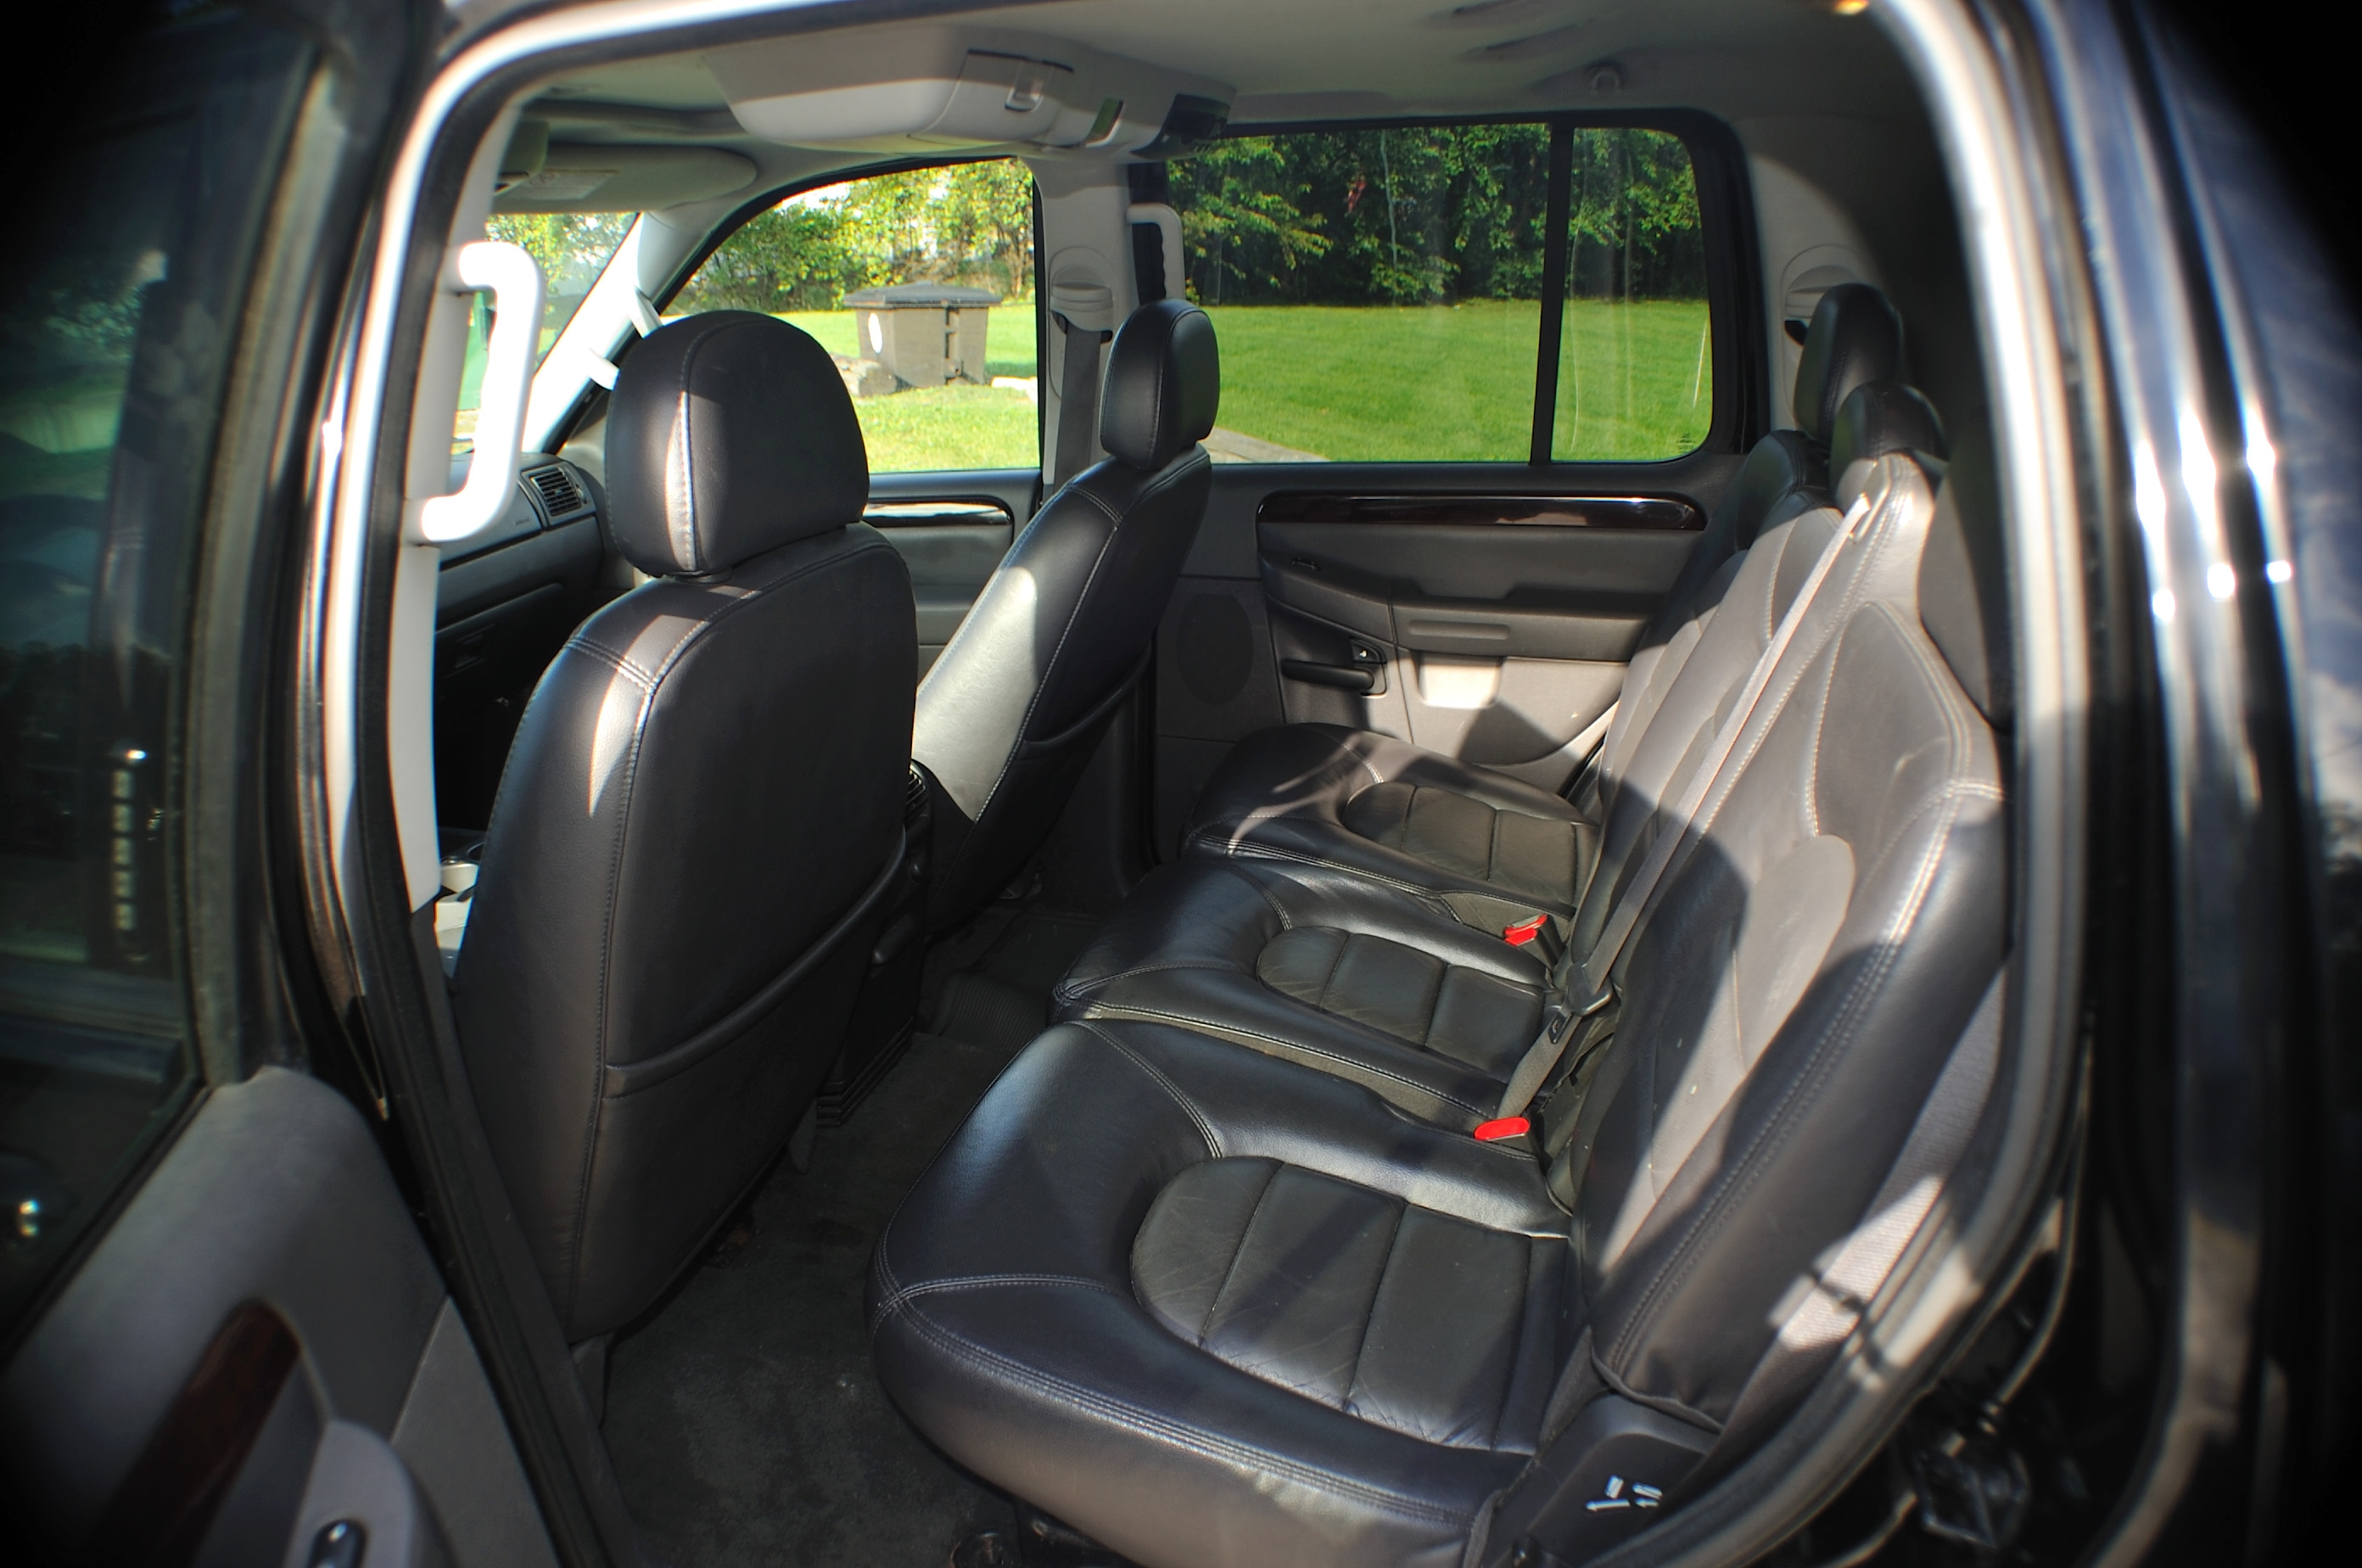 2004 Ford Explorer XLT Black Limited Used SUV 4x4 Sale Lake Villa Lake Zurich Lakemoor